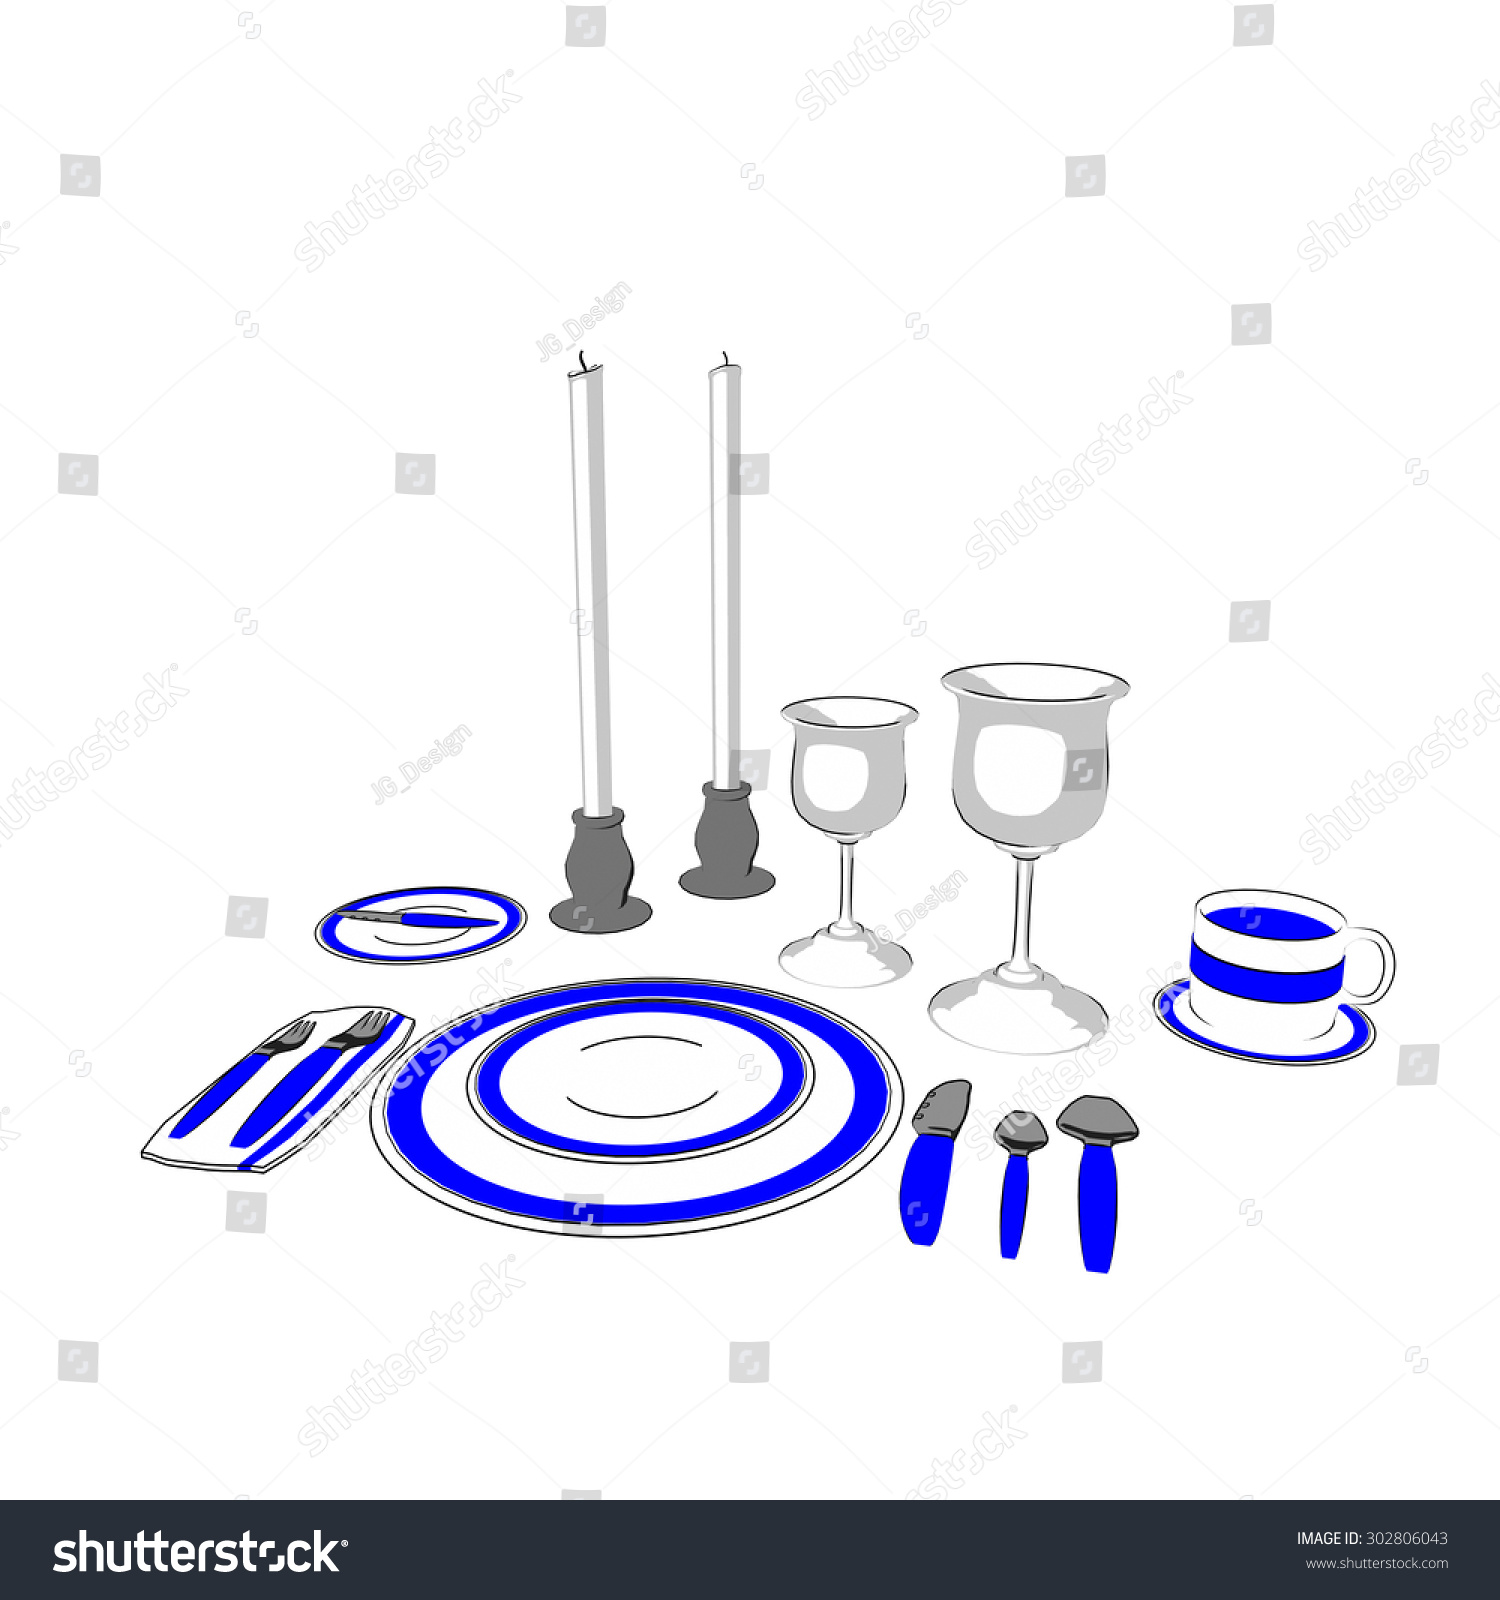 hight resolution of fine dining place setting with blue stripe